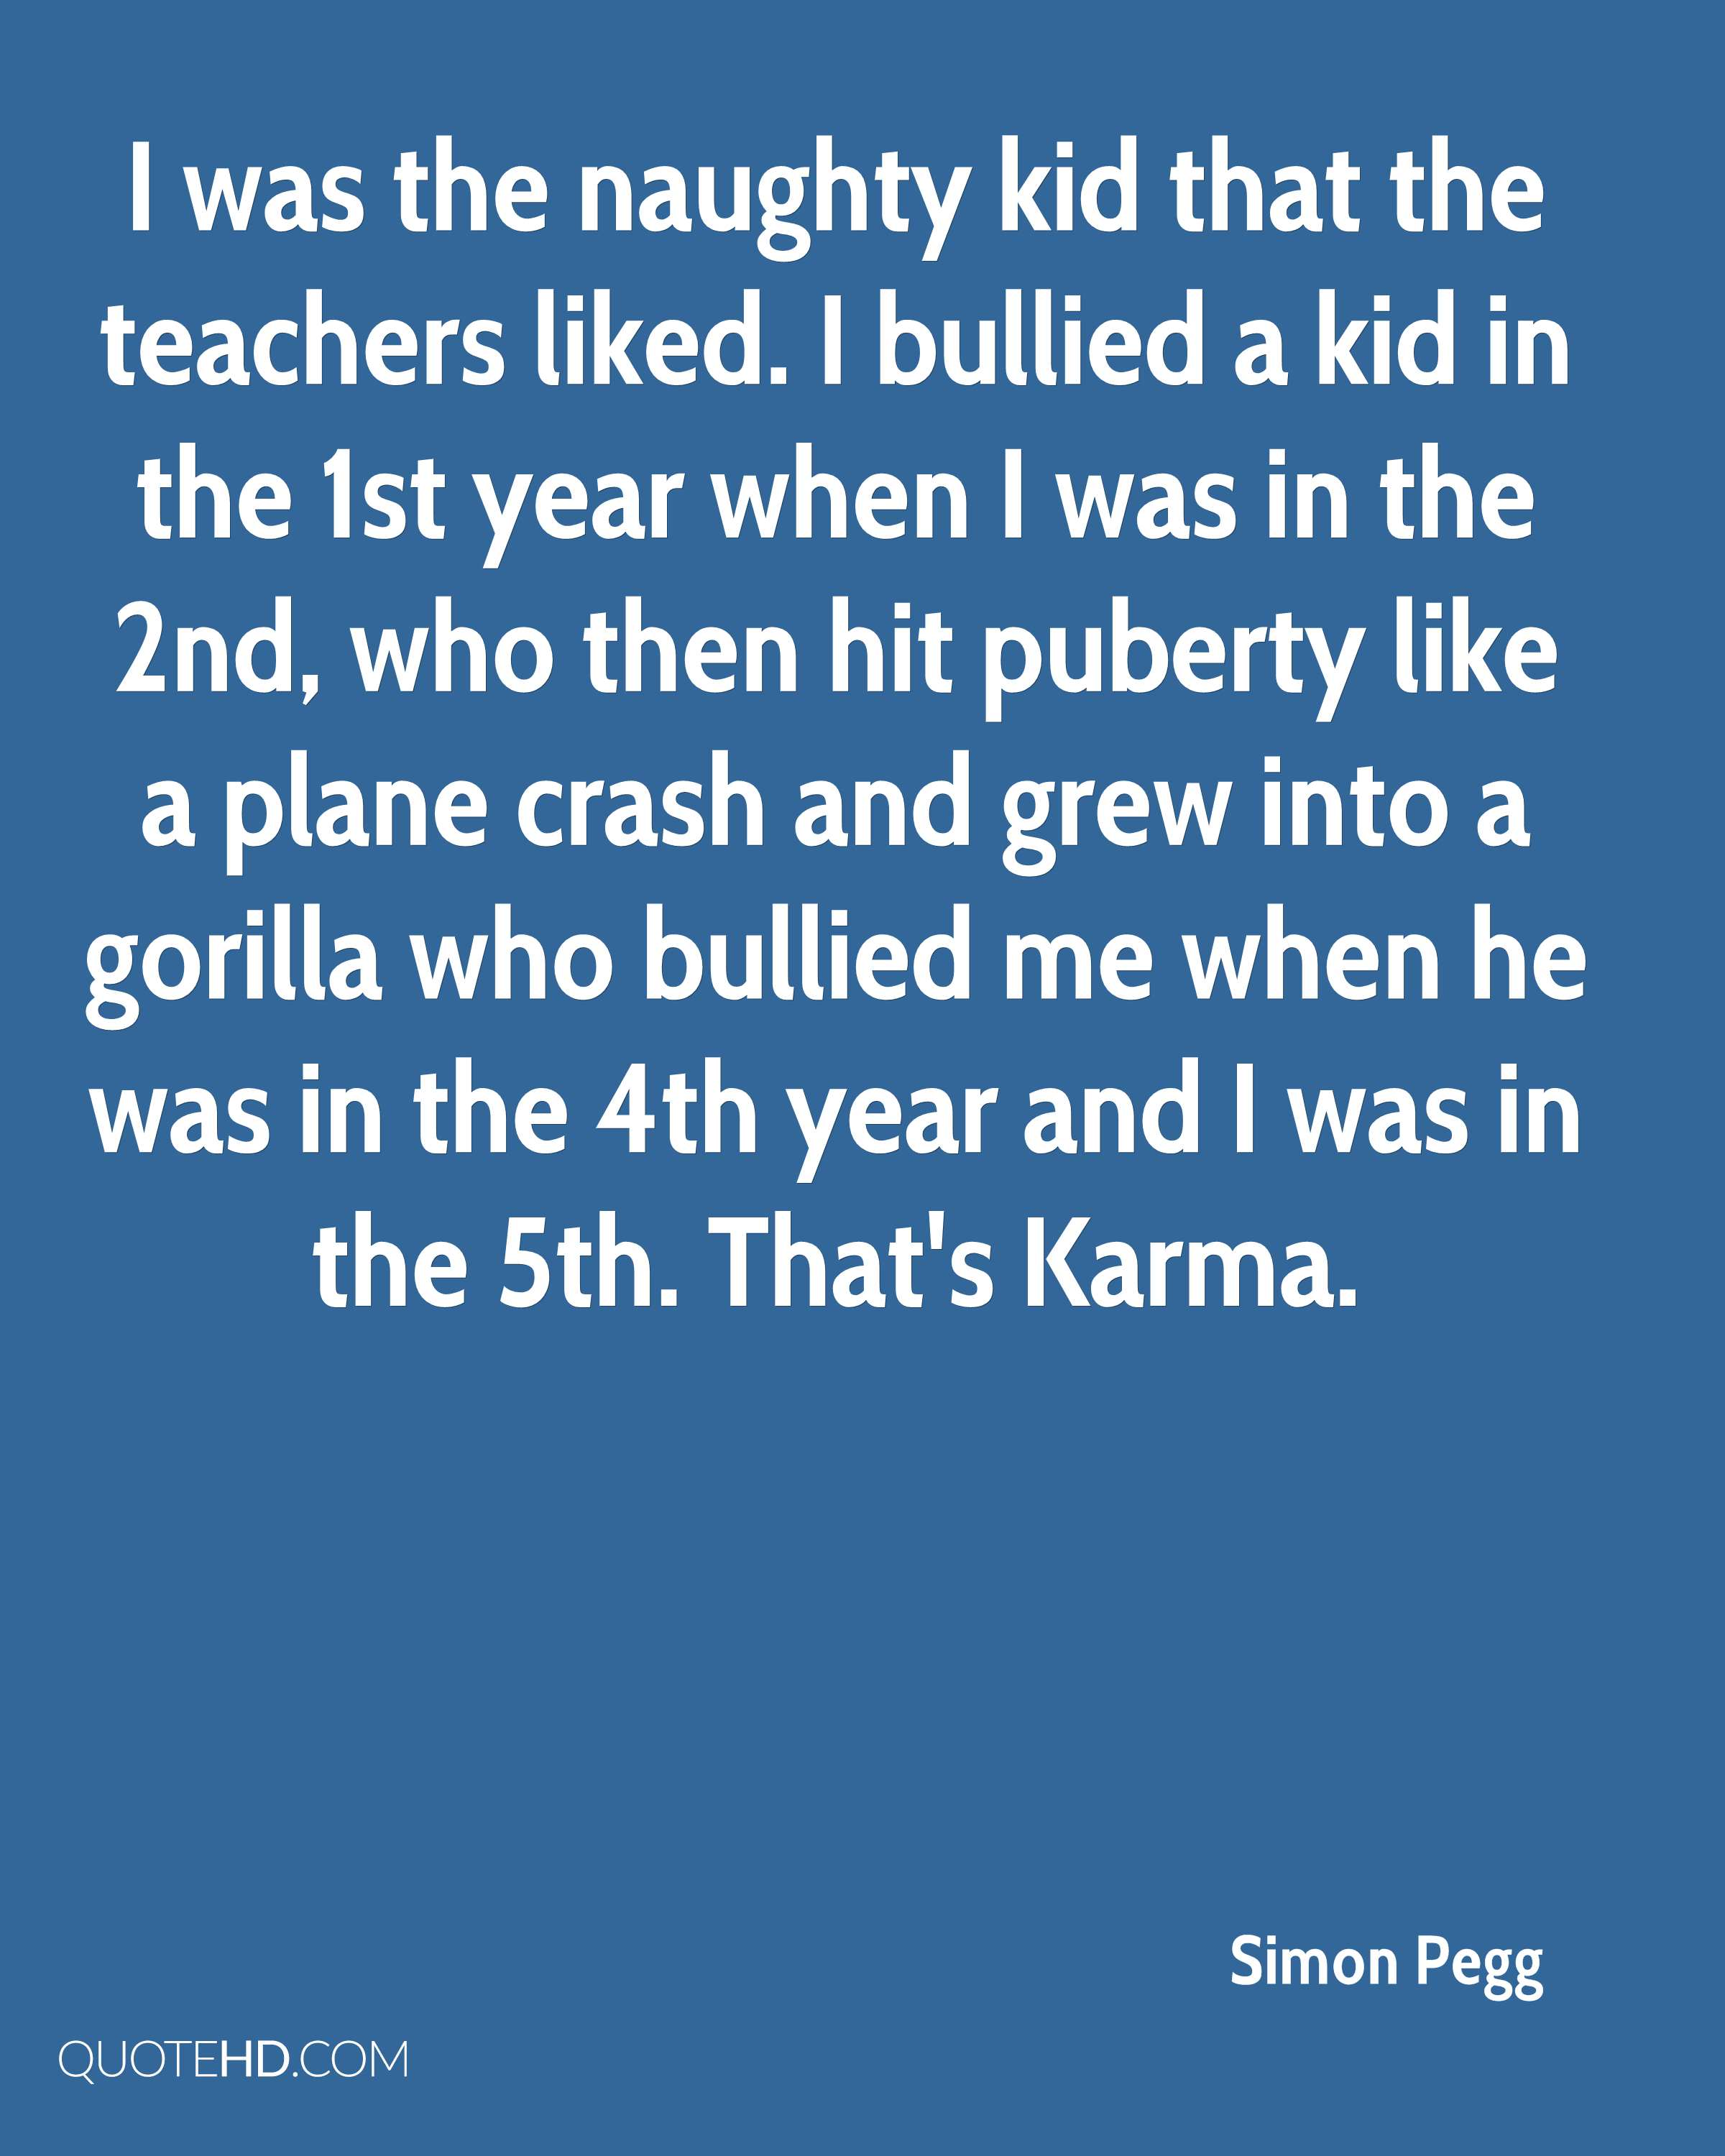 I was the naughty kid that the teachers liked. I bullied a kid in the 1st year when I was in the 2nd, who then hit puberty like a plane crash and grew into a gorilla who bullied me when he was in the 4th year and I was in the 5th. That's Karma.